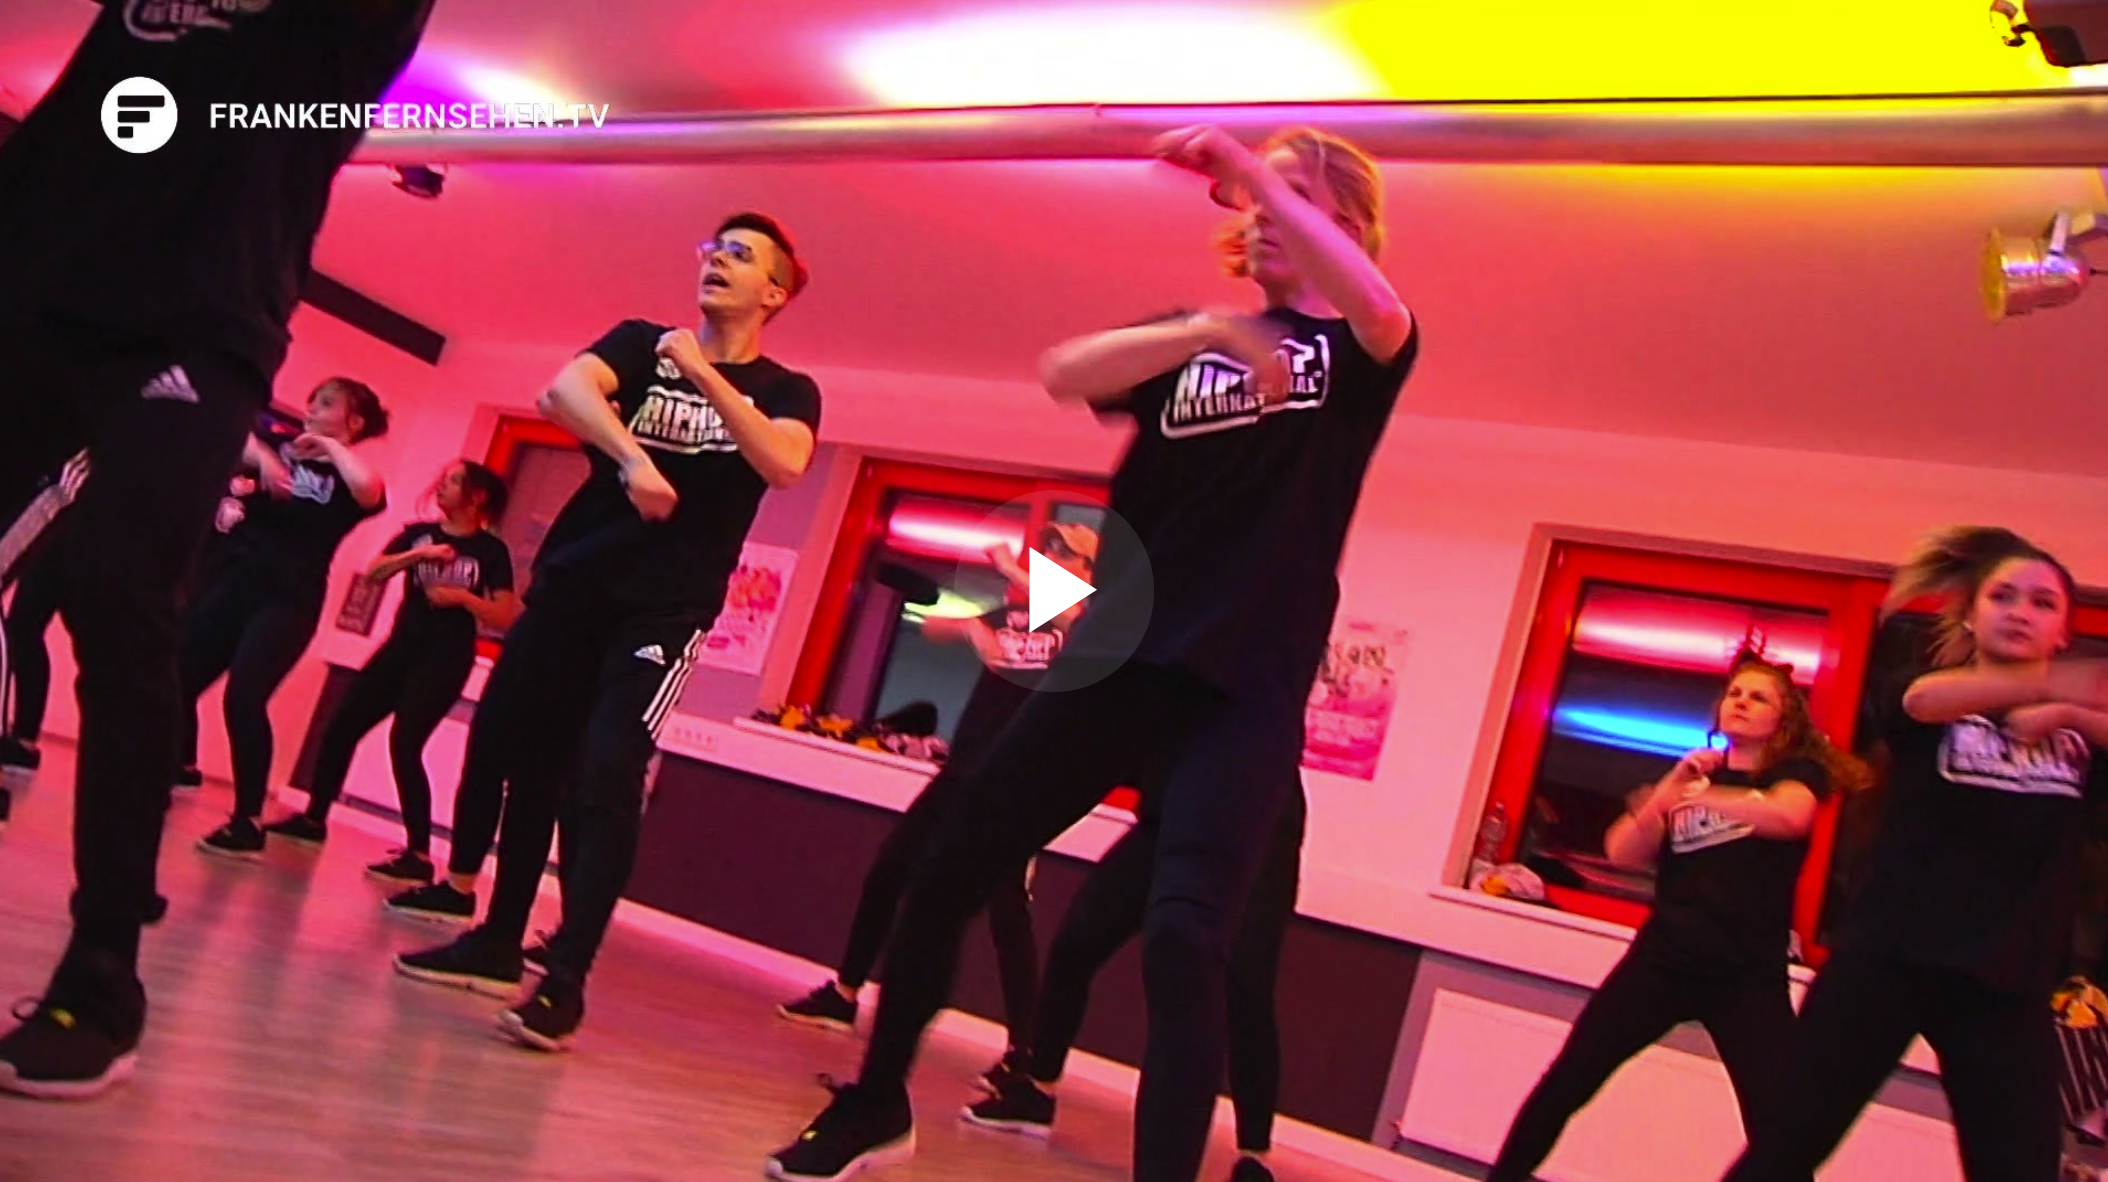 HHI GERMANY: Hip Hop Gruppe #NotReal aus Ansbach international erfolgreich